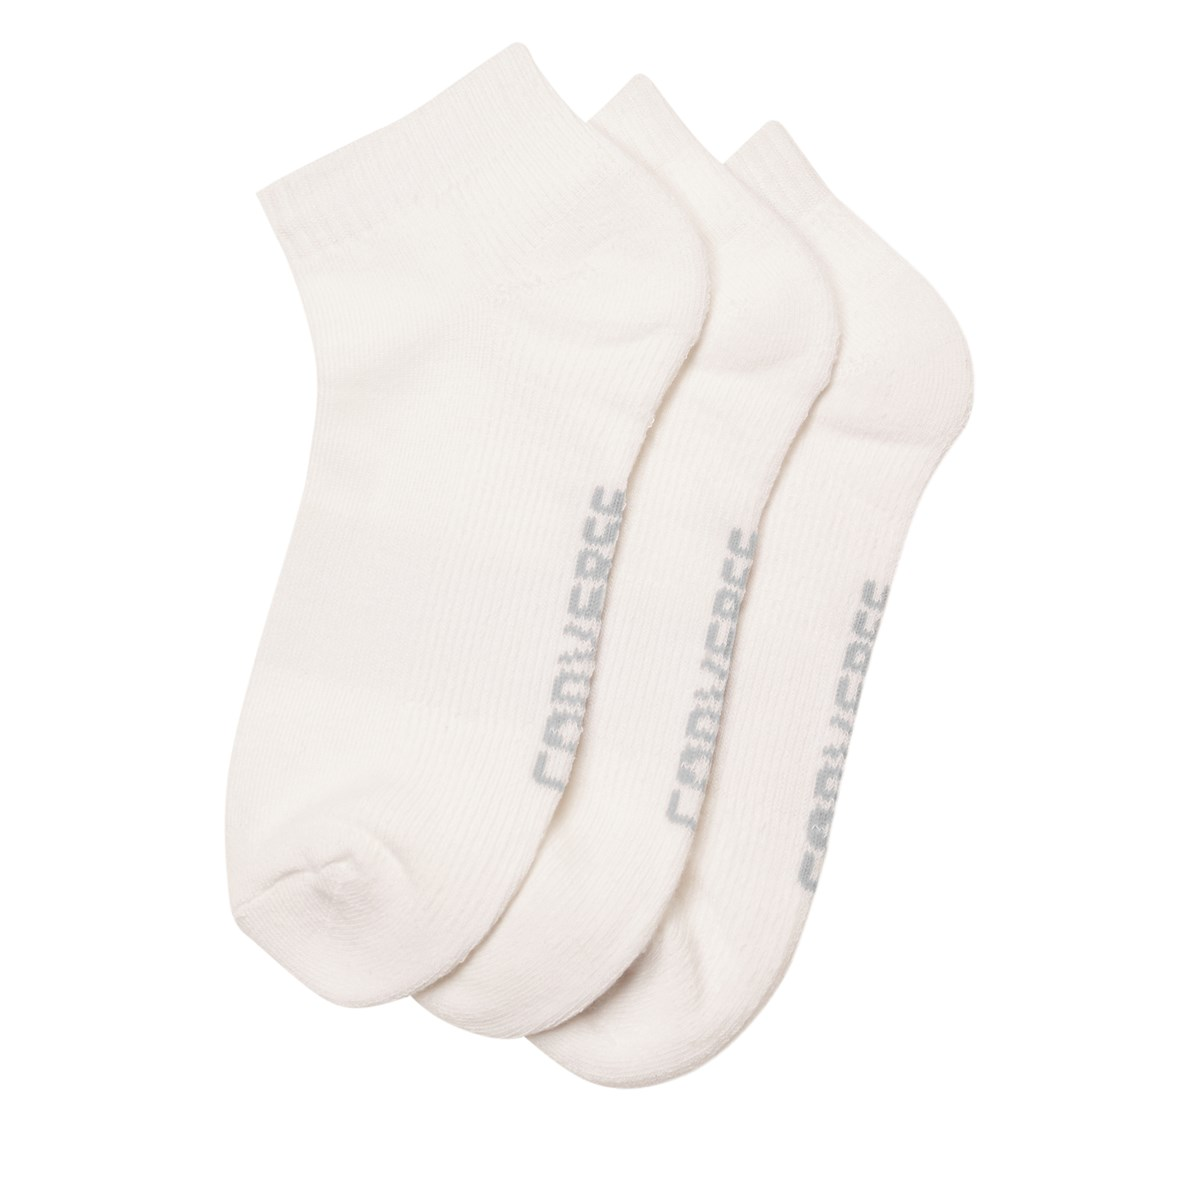 Women's 3-Pack White Socks